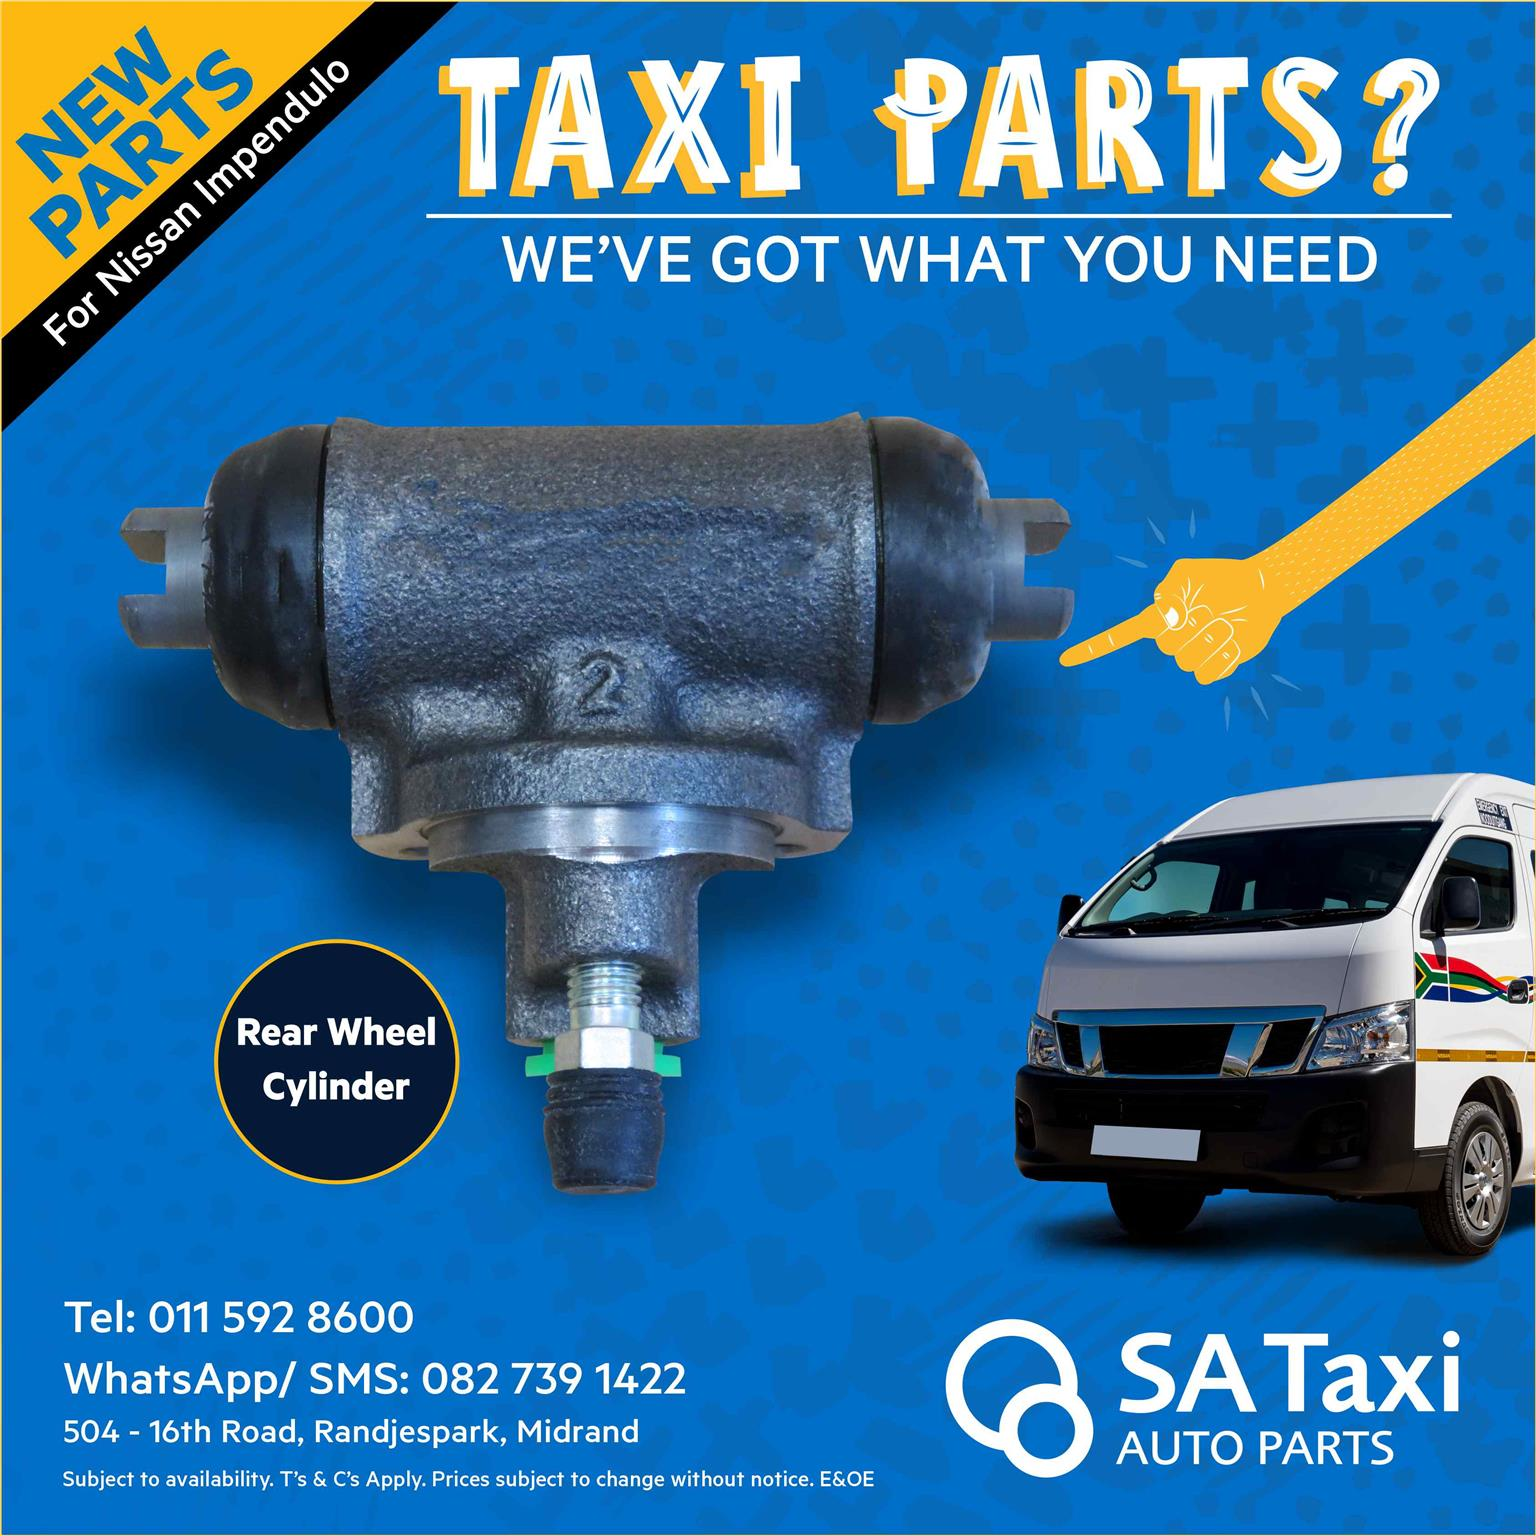 NEW Rear Brake Wheel Cylinder for Nissan NV350 Impendulo - SA Taxi Auto Parts quality spares